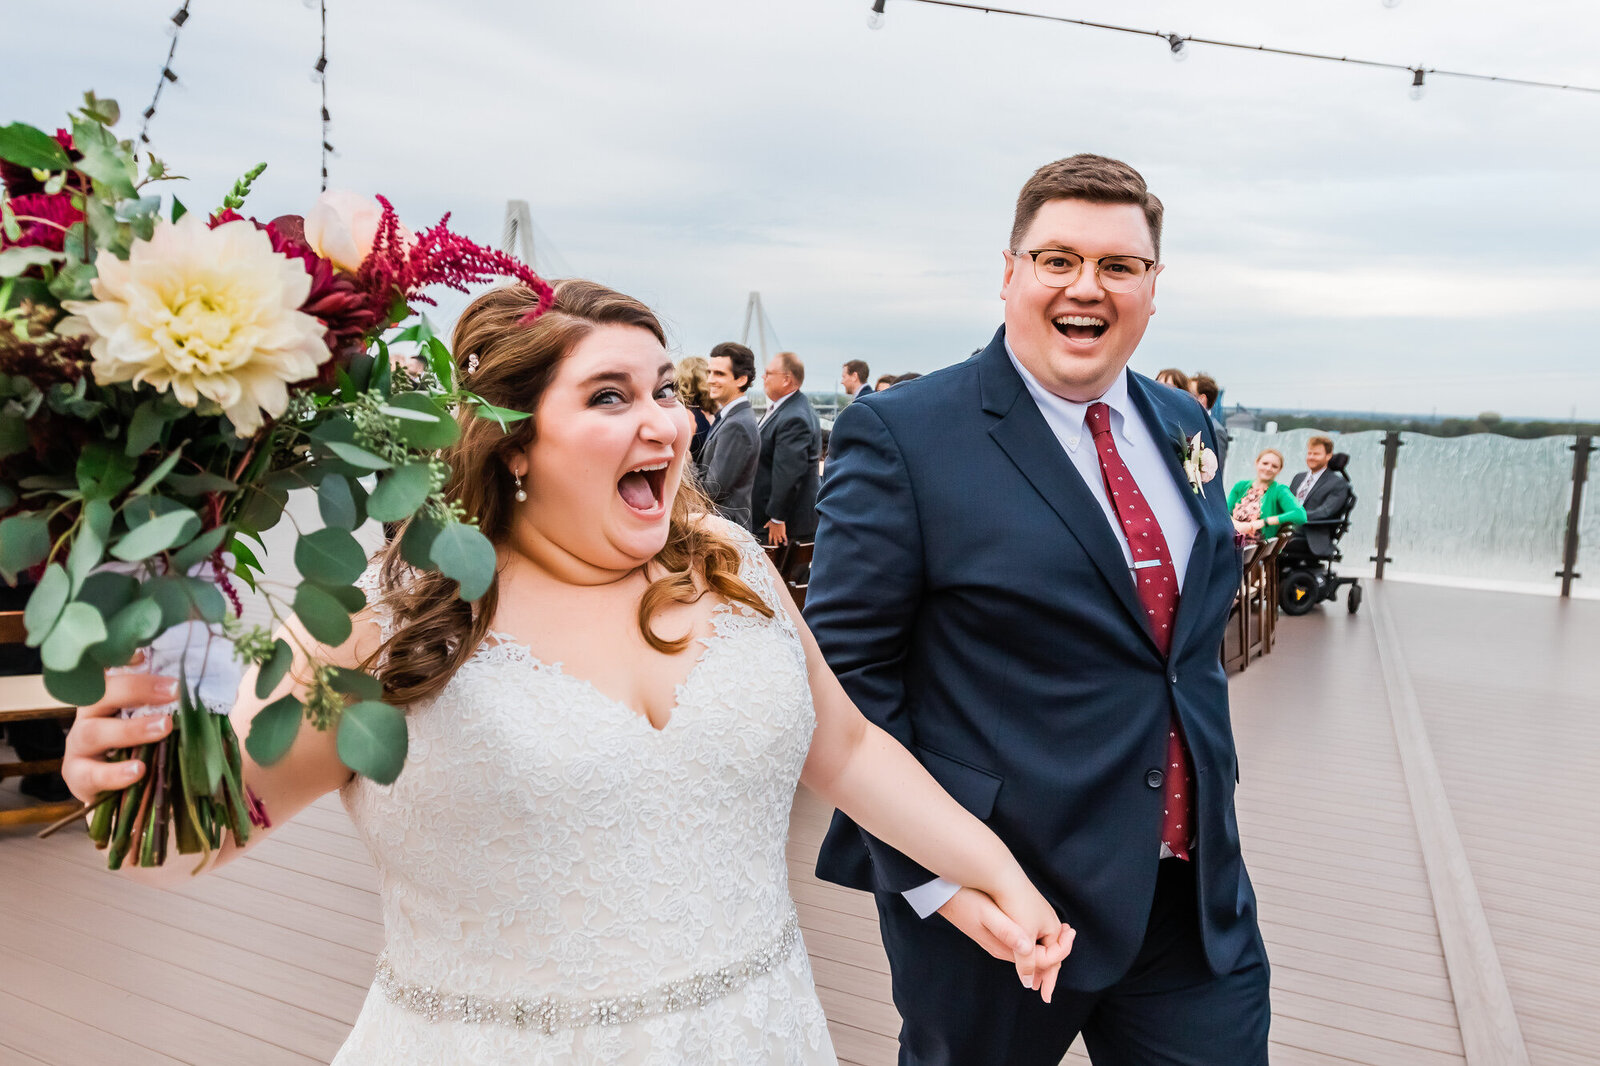 Couple celebrates after their wedding ceremony at The Caramel Room at Bissinger's in downtown St. Louis